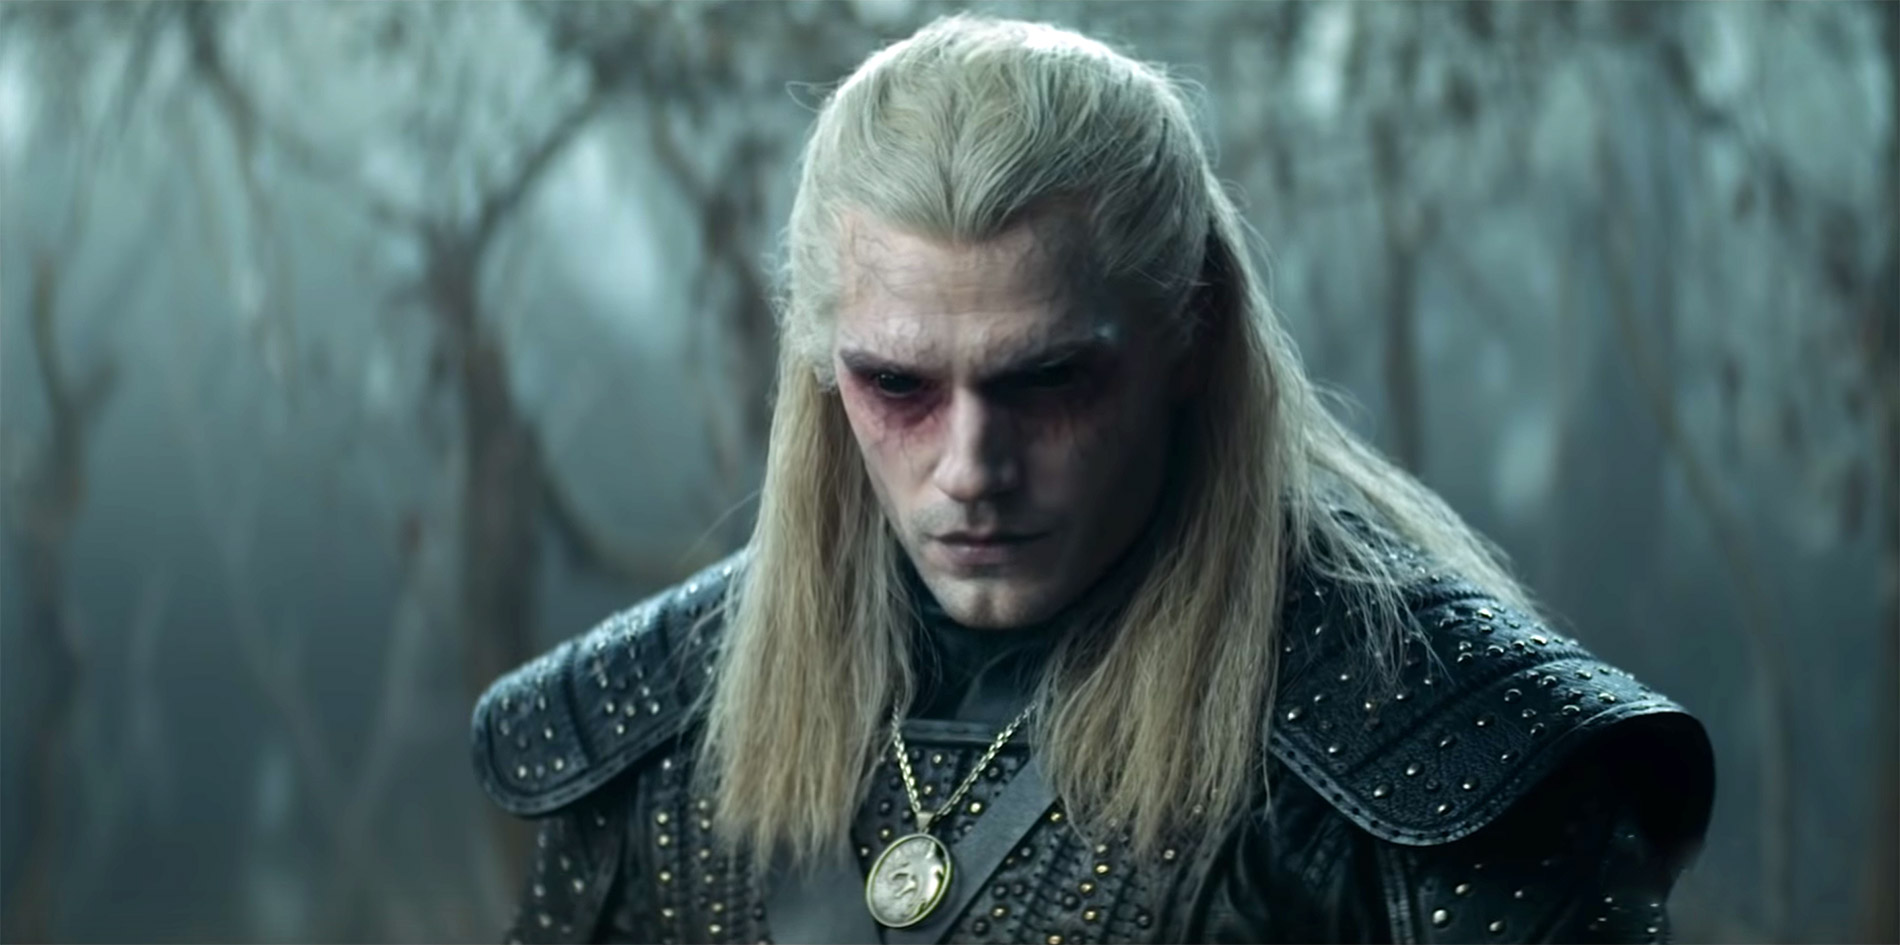 The Witcher Trailer: Henry Cavill Becomes Some Kind of Monster Hunter